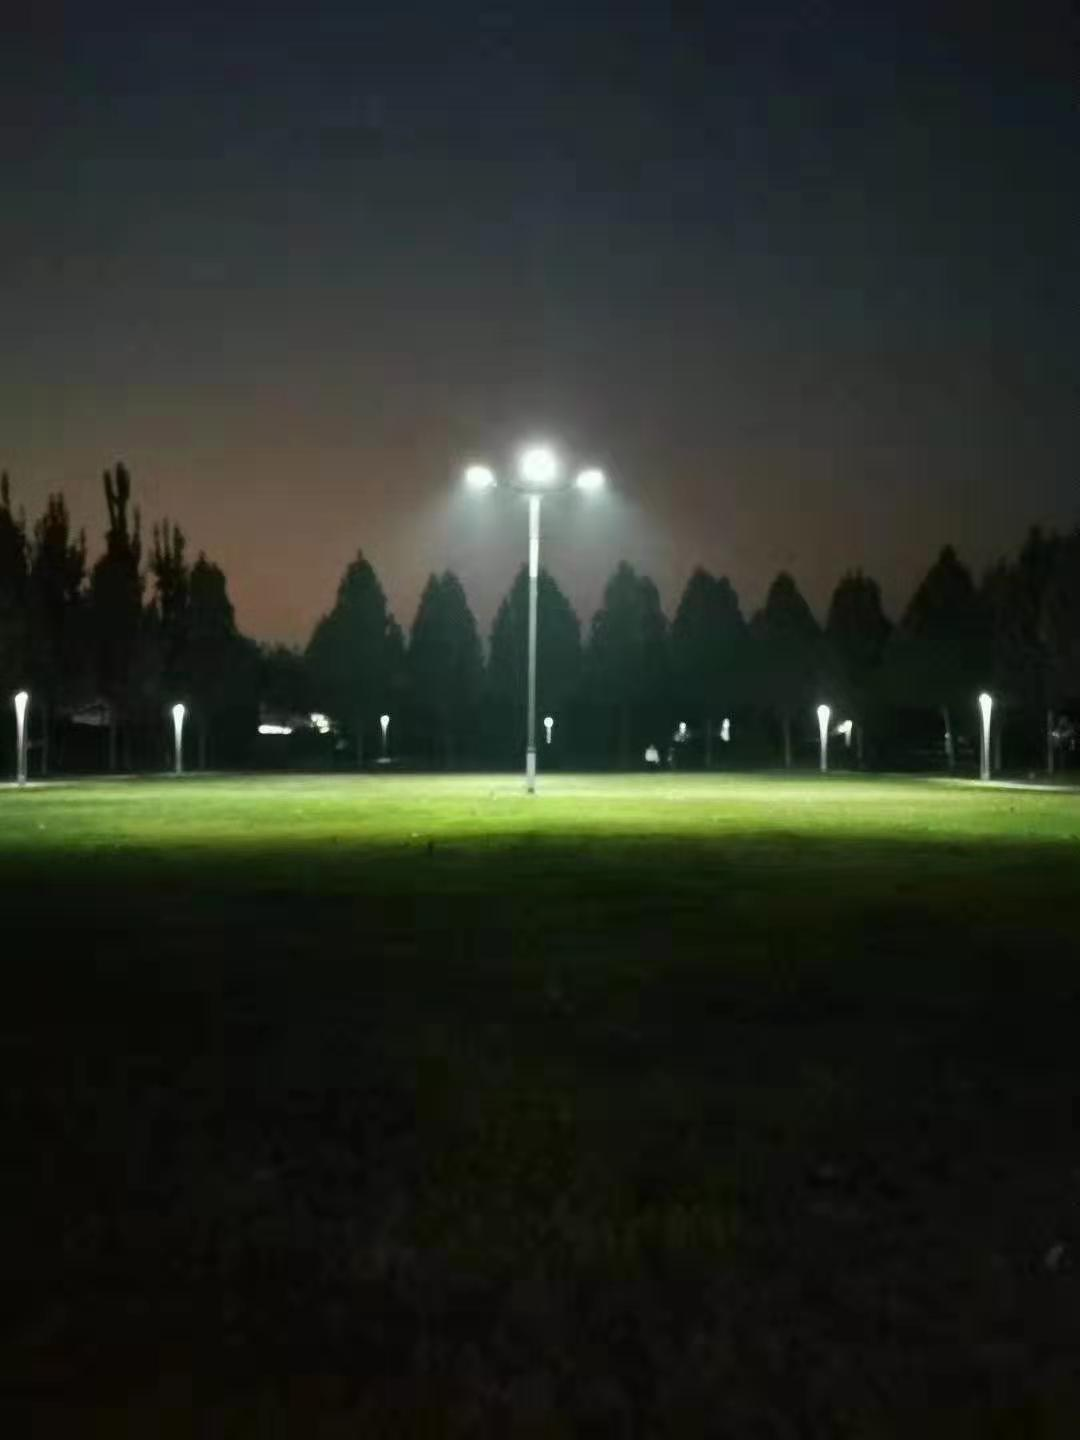 The Lighting Range and illuminance for Solar Street Lights